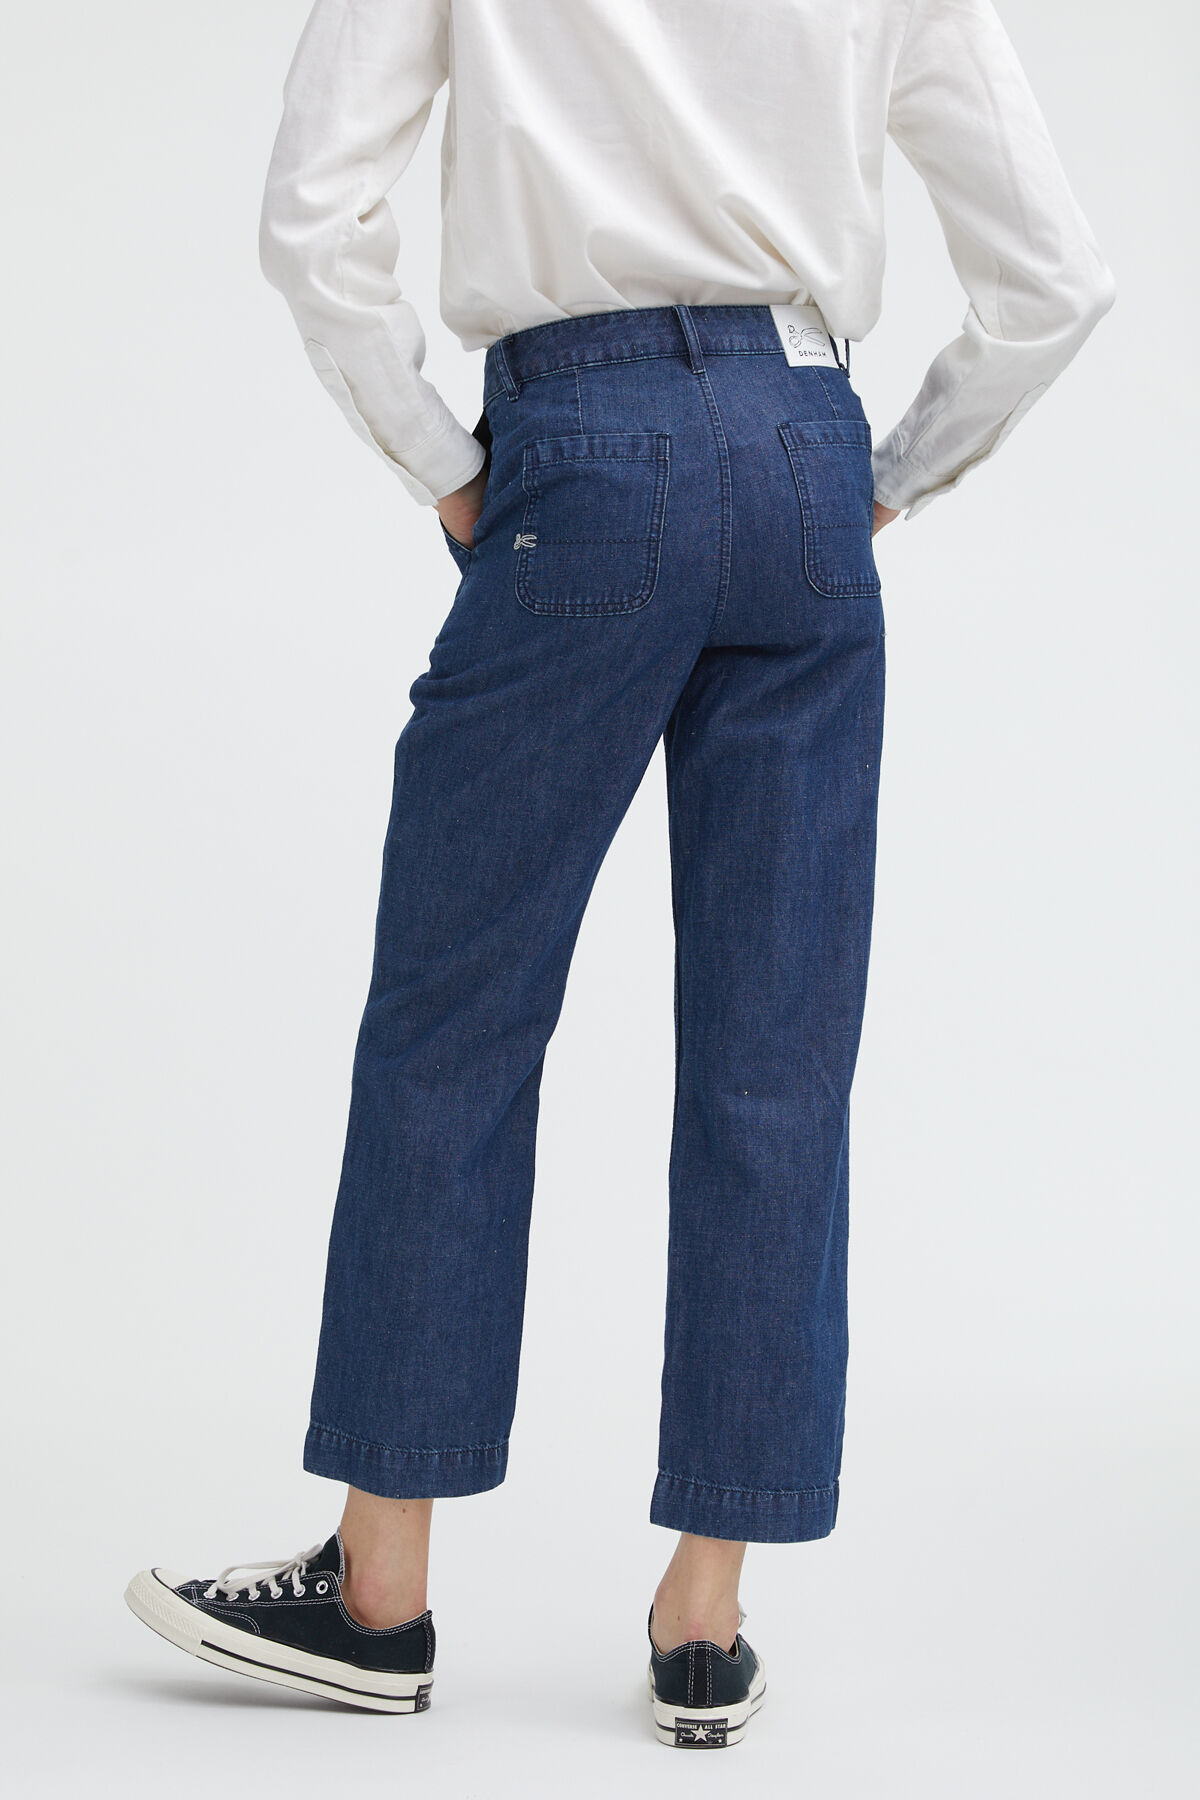 PACIFIC PANT Cotton & Hemp Blend - High-rise Straight Fit